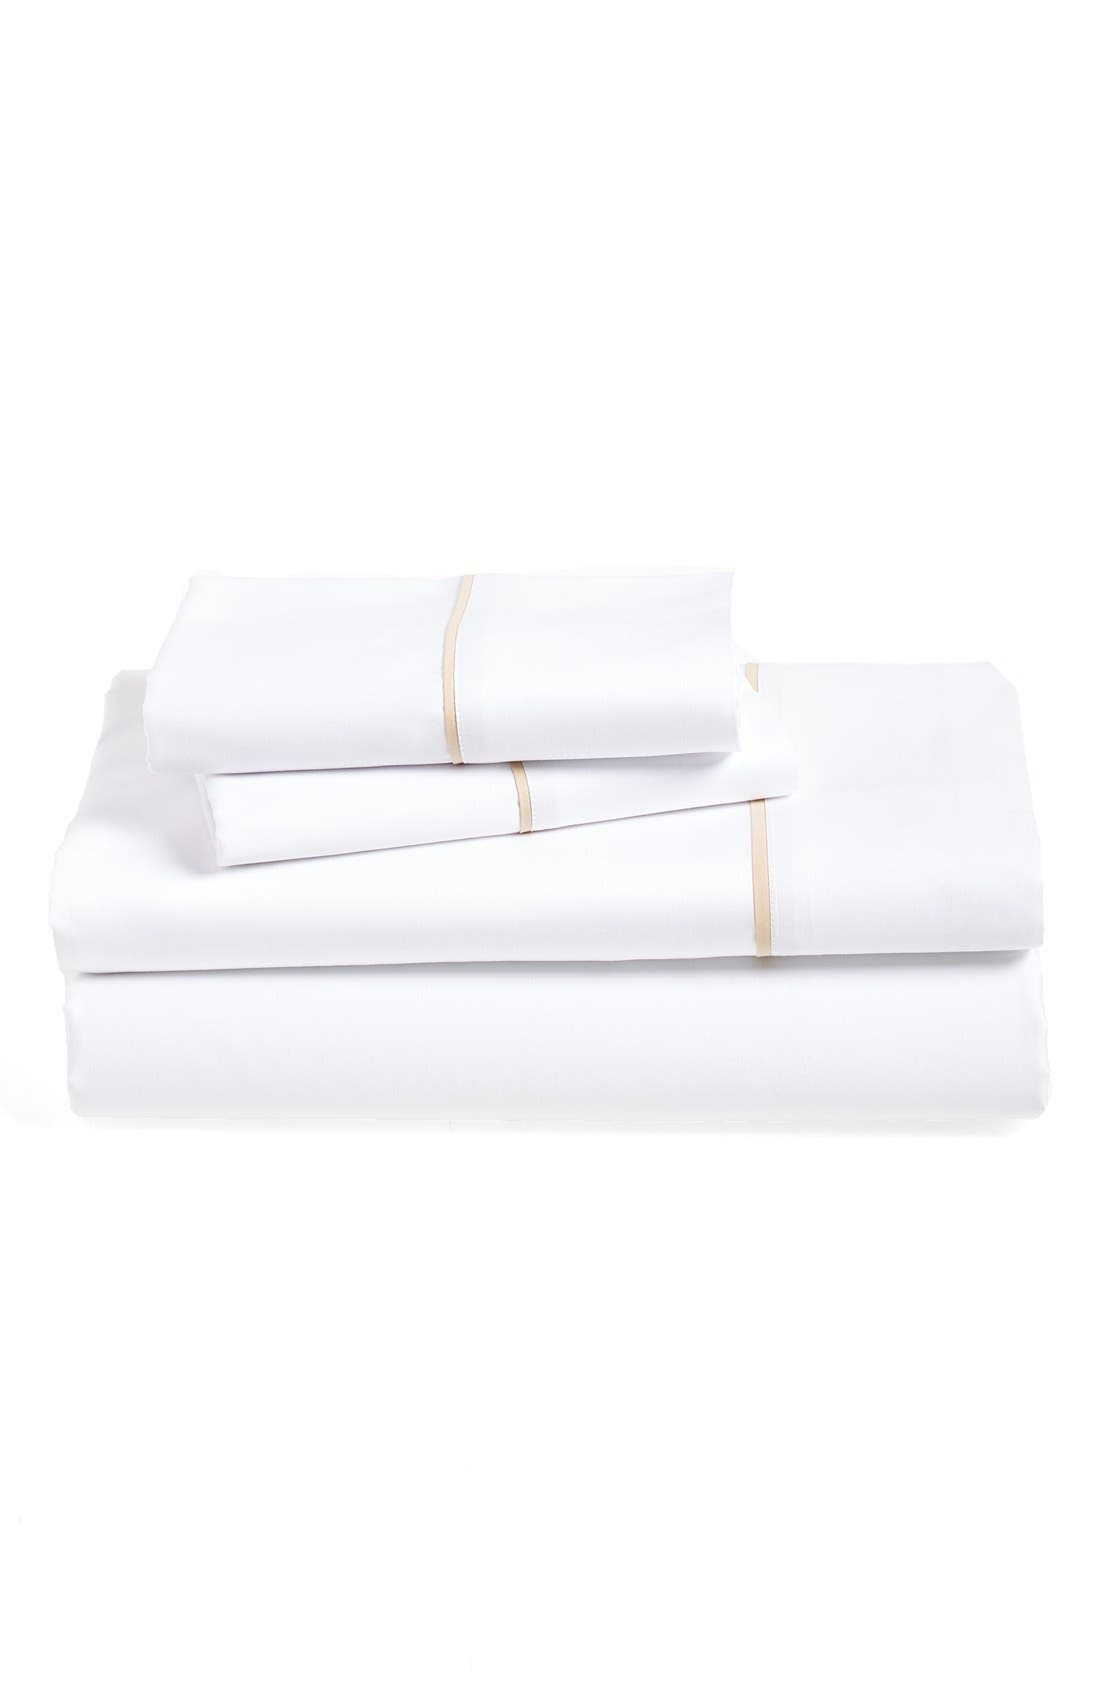 Westin At Home 'Ultra Luxe' 600 Thread Count Flat Sheet